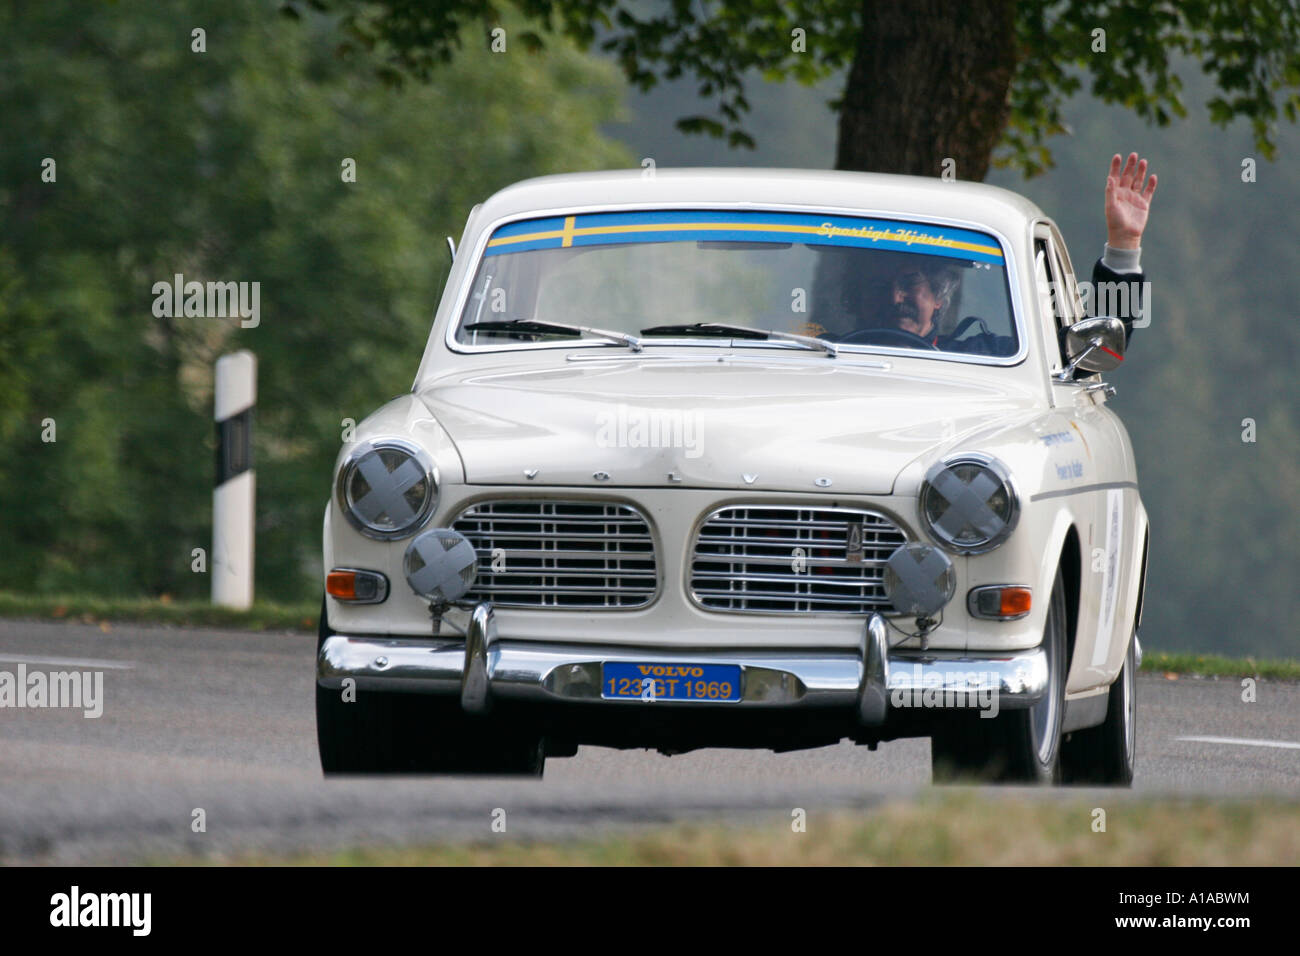 volvo 123 gt errichtet 1969 stockfoto bild 10195999 alamy. Black Bedroom Furniture Sets. Home Design Ideas